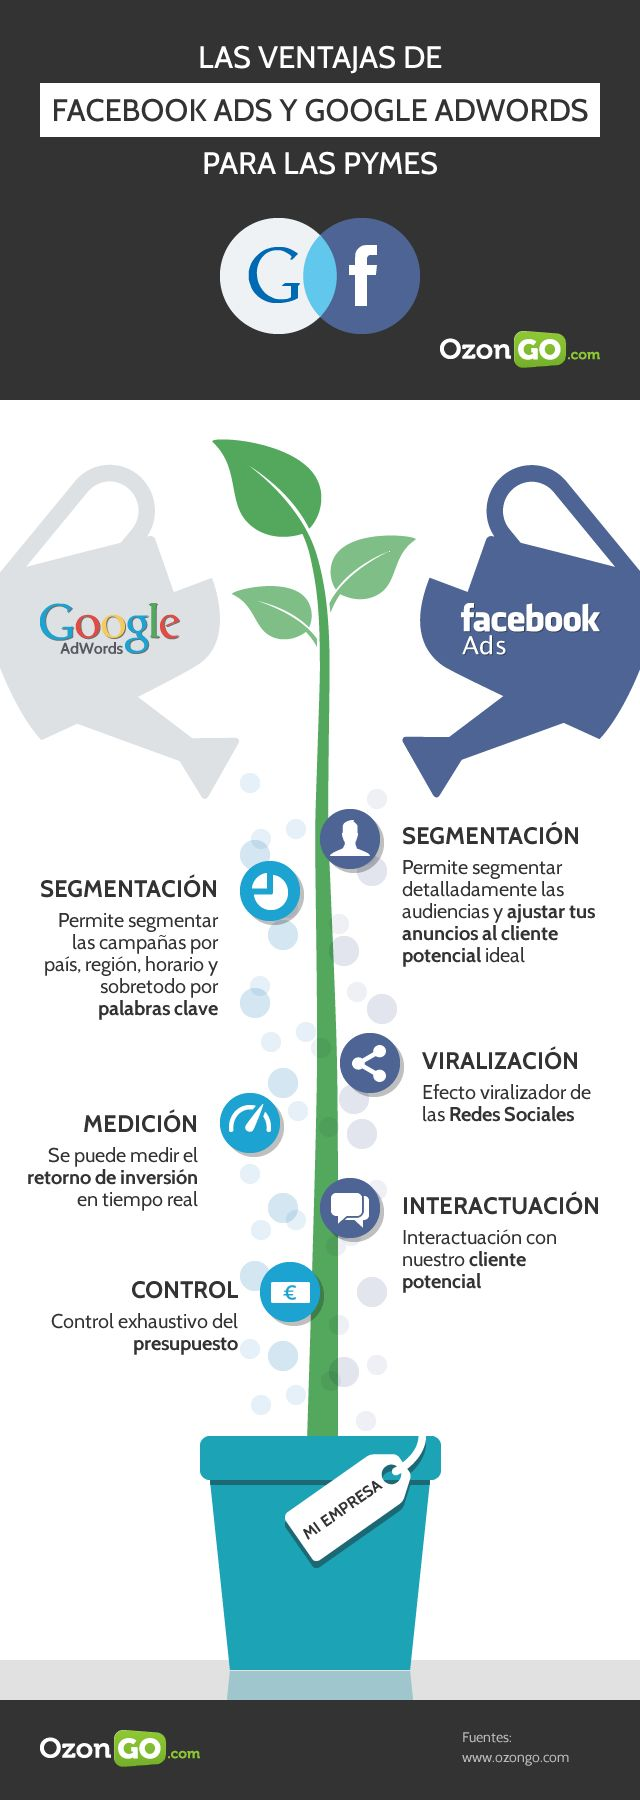 Ventajas de Google Adwords vs Facebook Ads para pymes #infografia